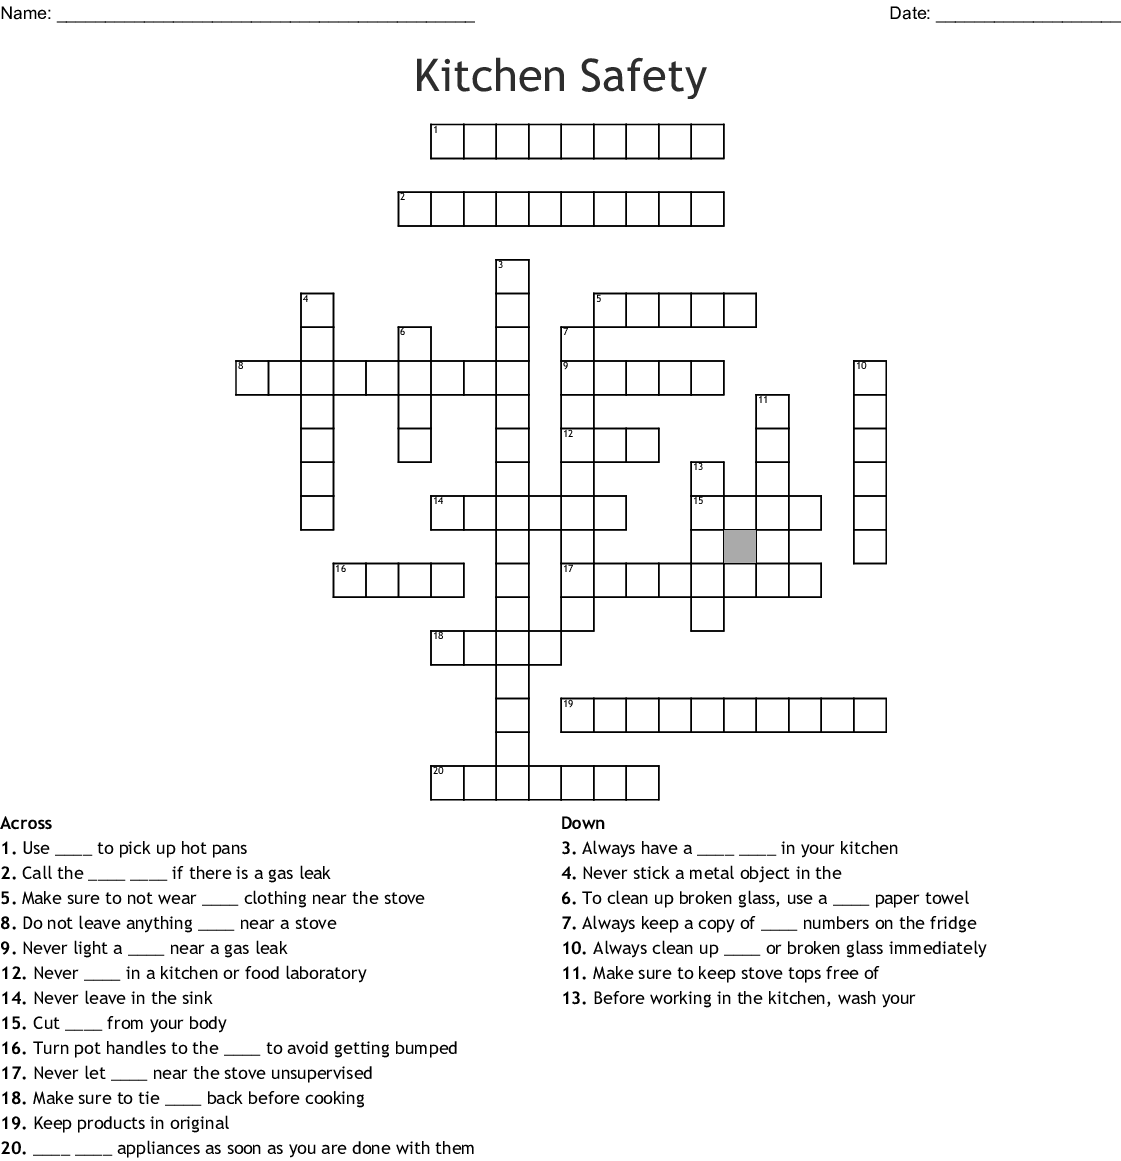 Kitchen Safety Crossword Wordmint